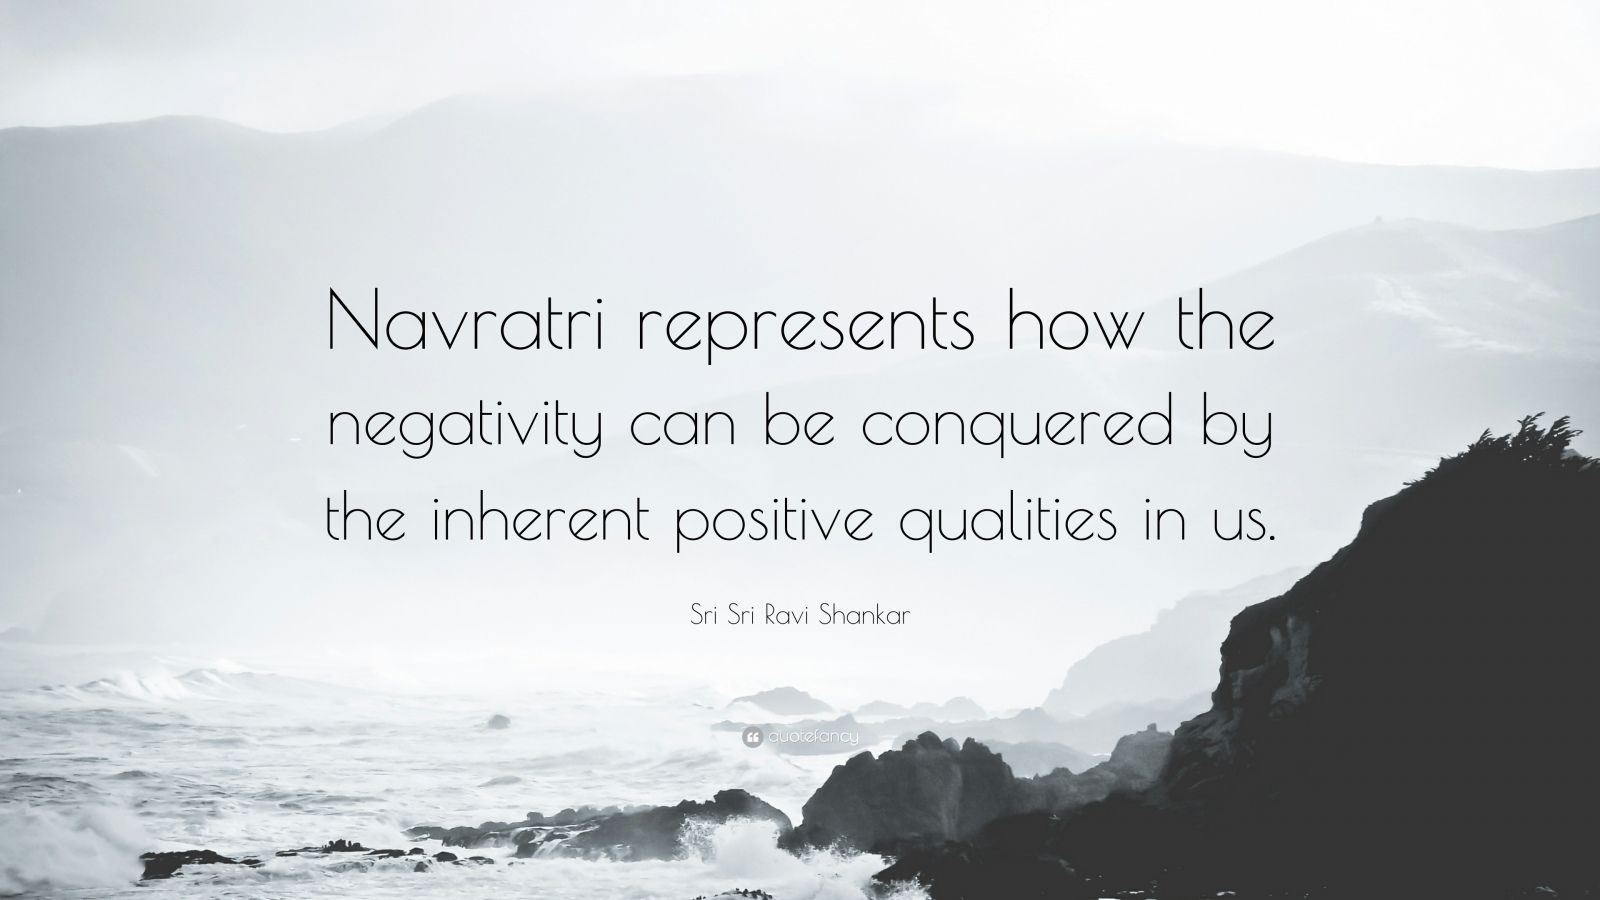 """Sri Sri Ravi Shankar Quote: """"Navratri represents how the negativity can be conquered by the inherent positive qualities in us."""""""